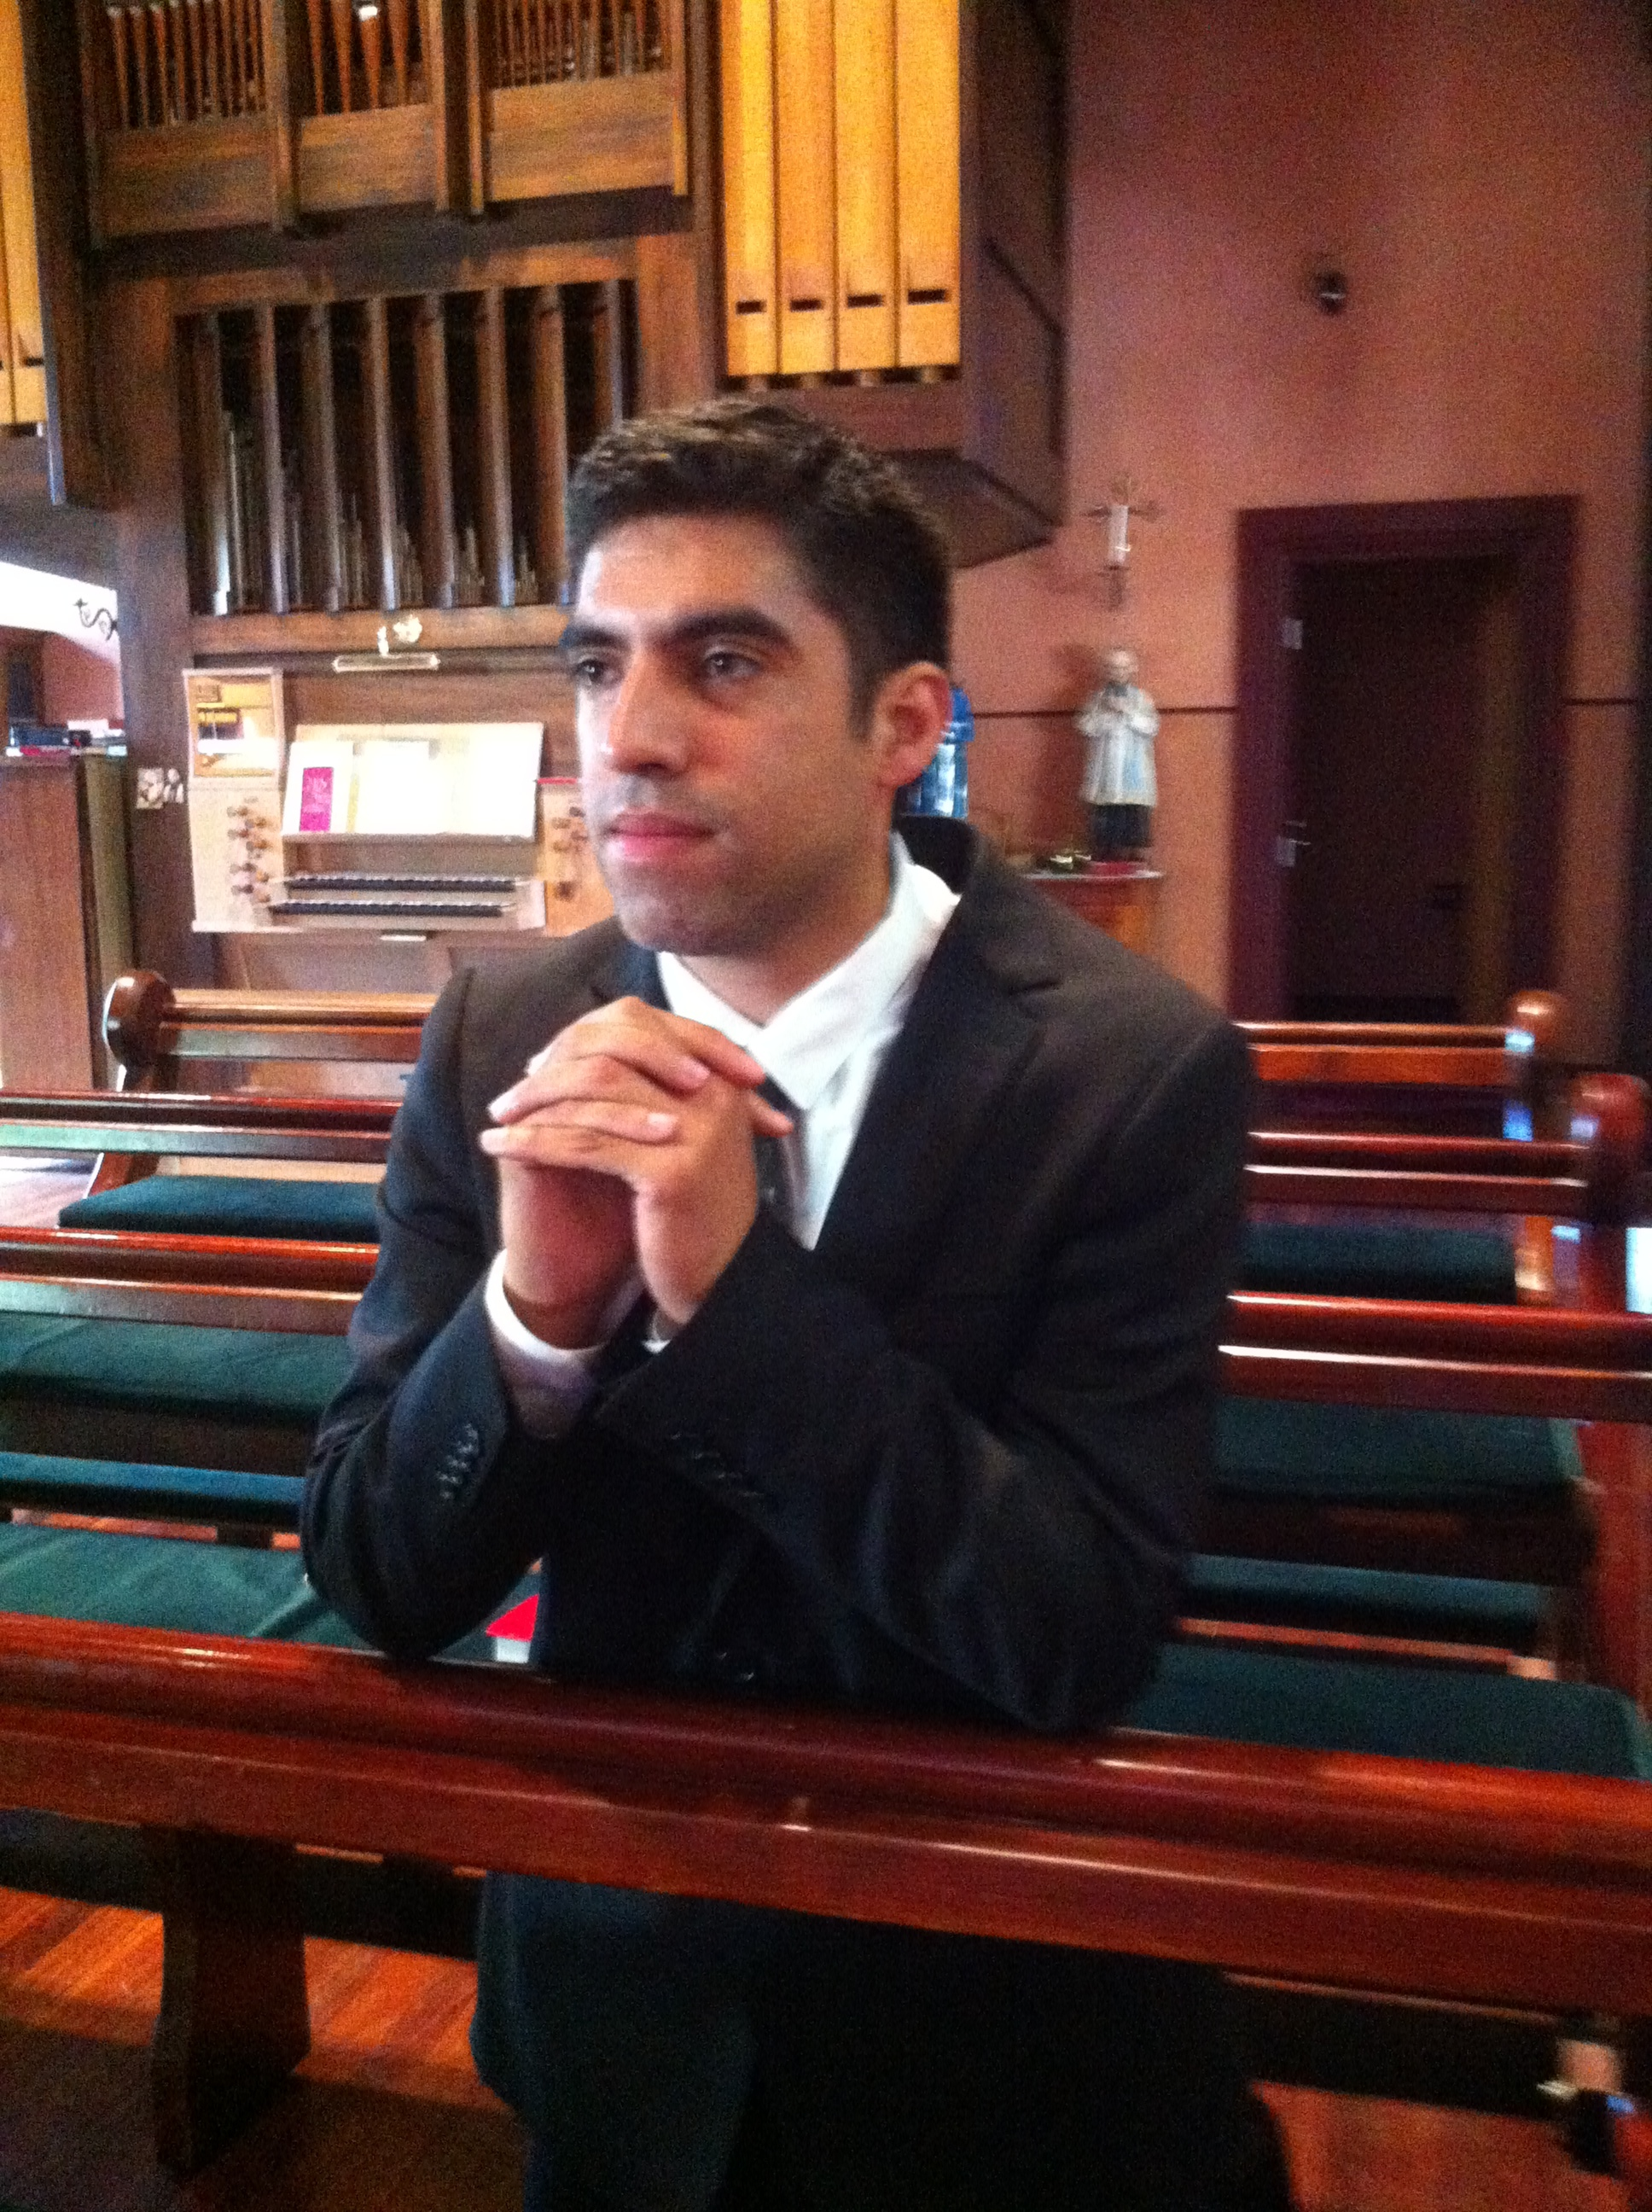 Christhian prays in the chapel at Corpus Christi College, Carlton.